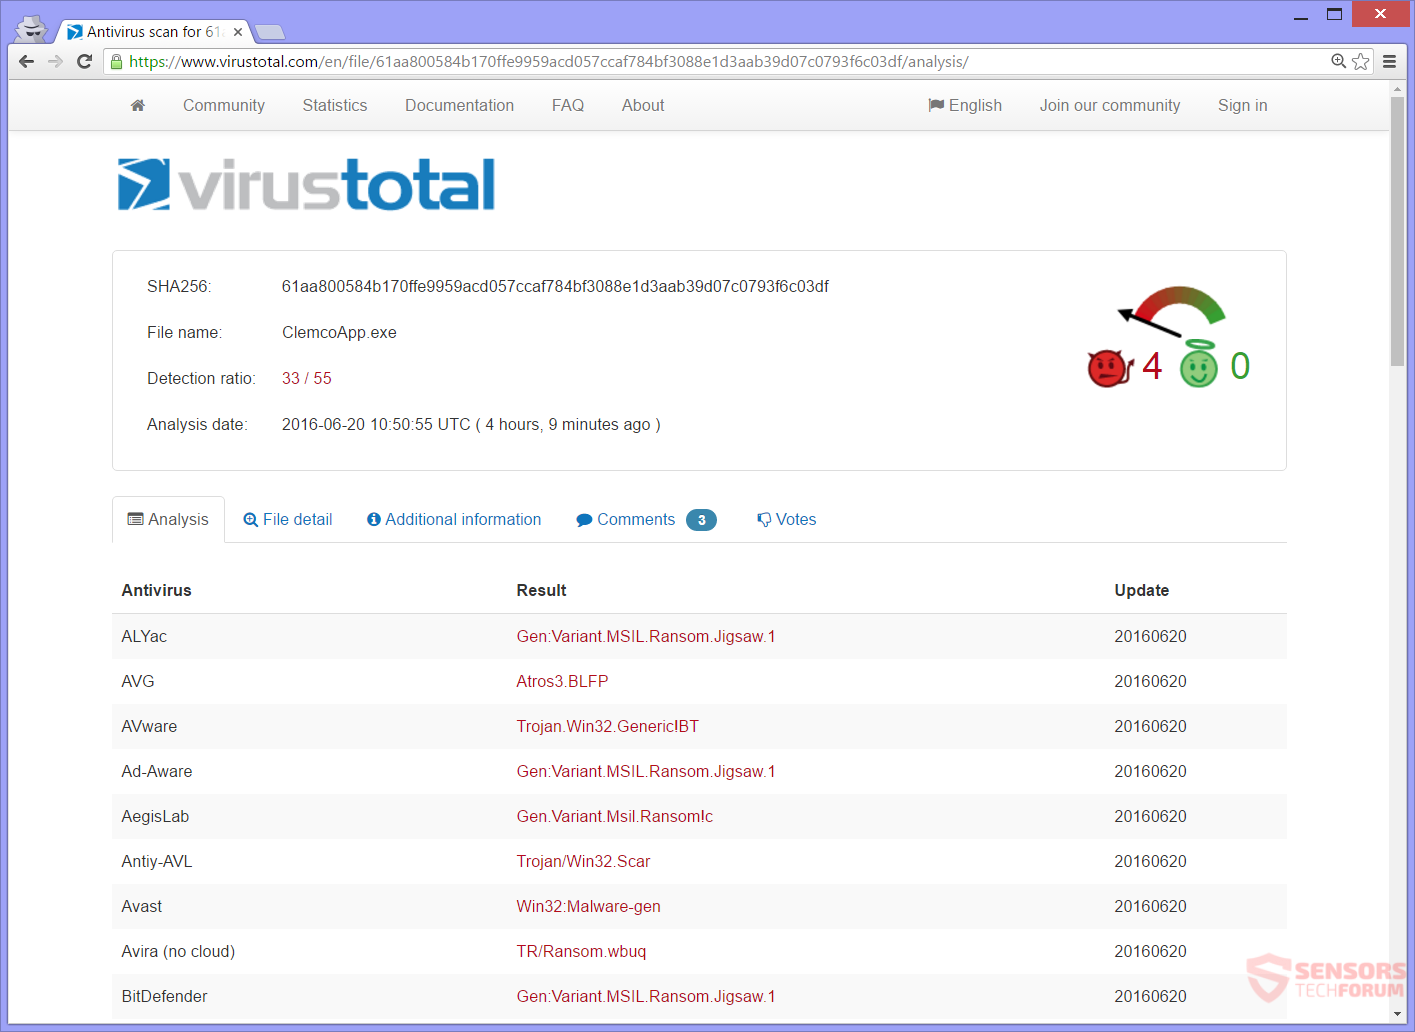 STF-puzzle-annonymous-variante-epico-VirusTotal